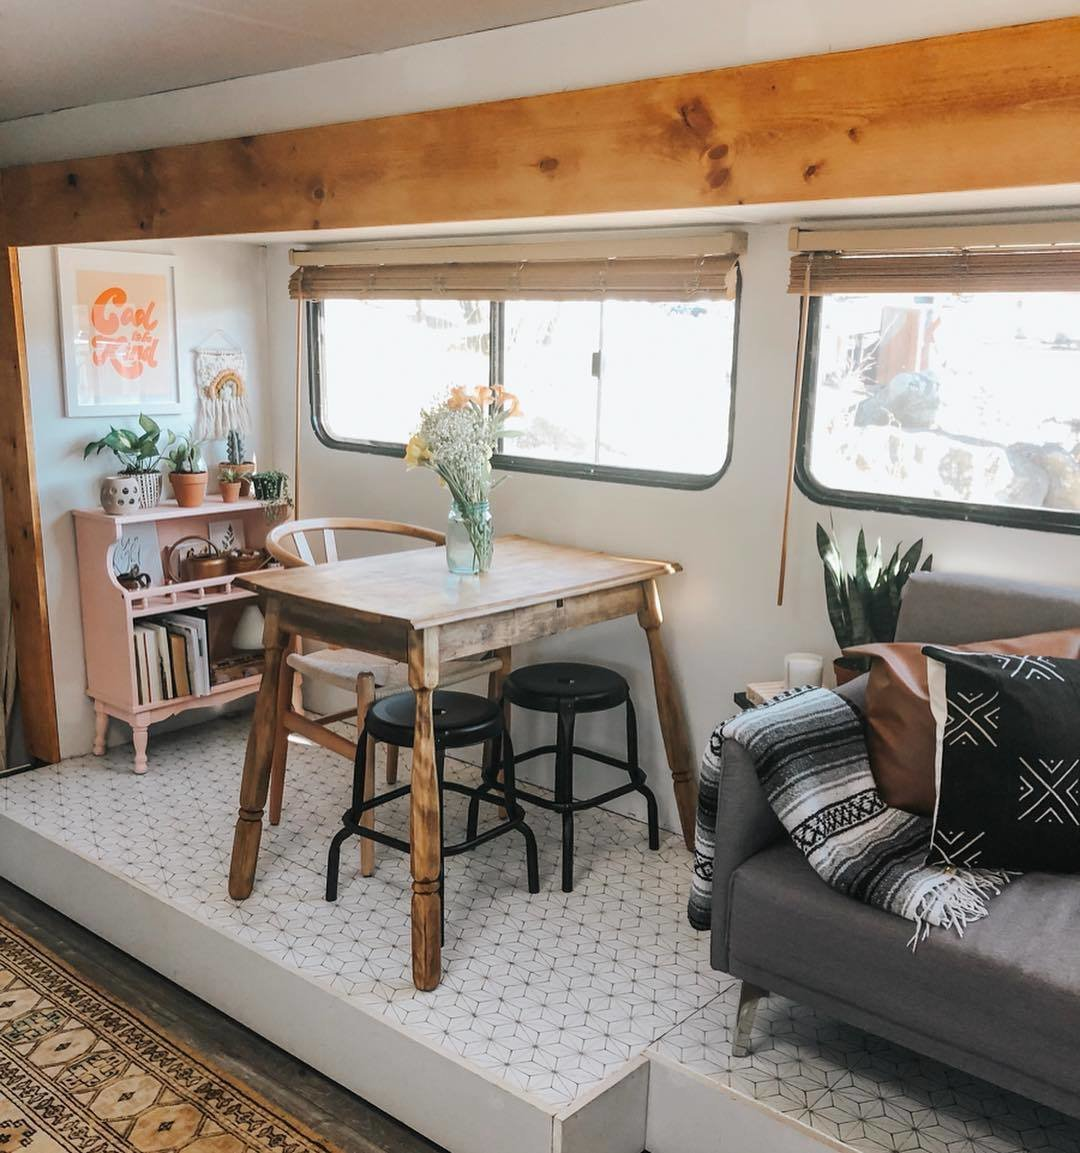 Dwell On Flipboard Home Building Tiny House Movement Santa Monica